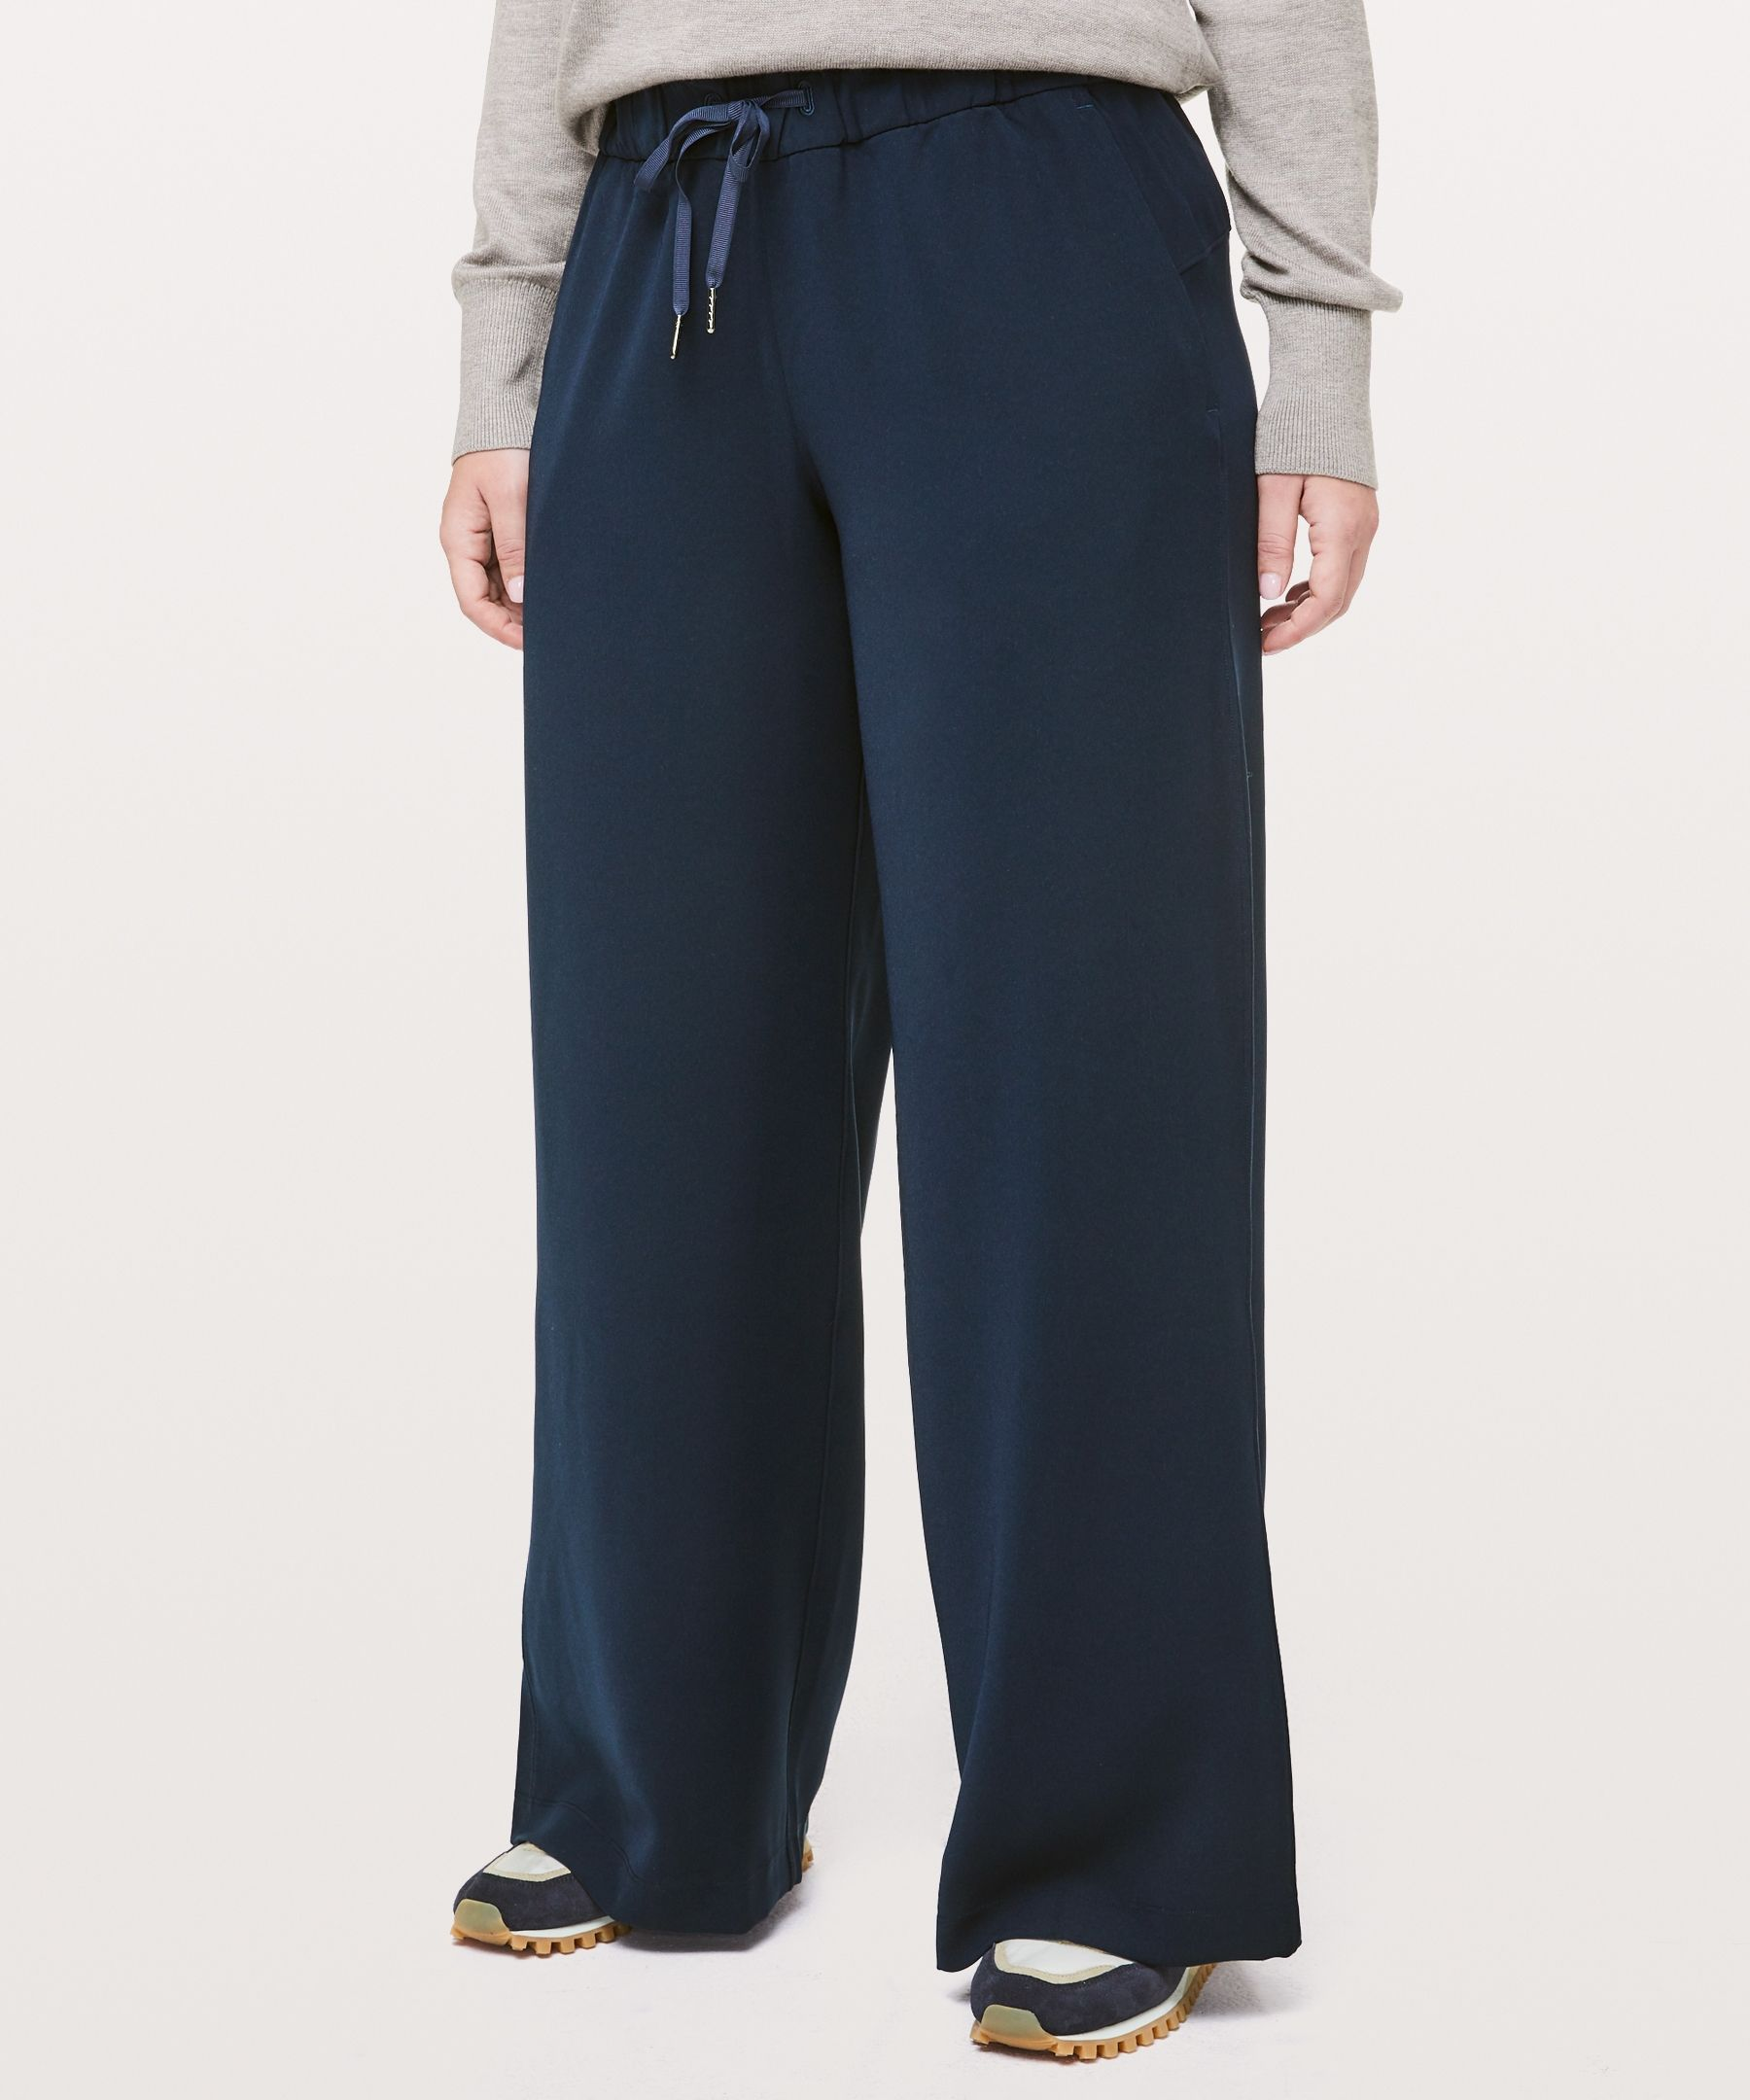 dd707b4e78 On The Fly Pant Wide Leg 31